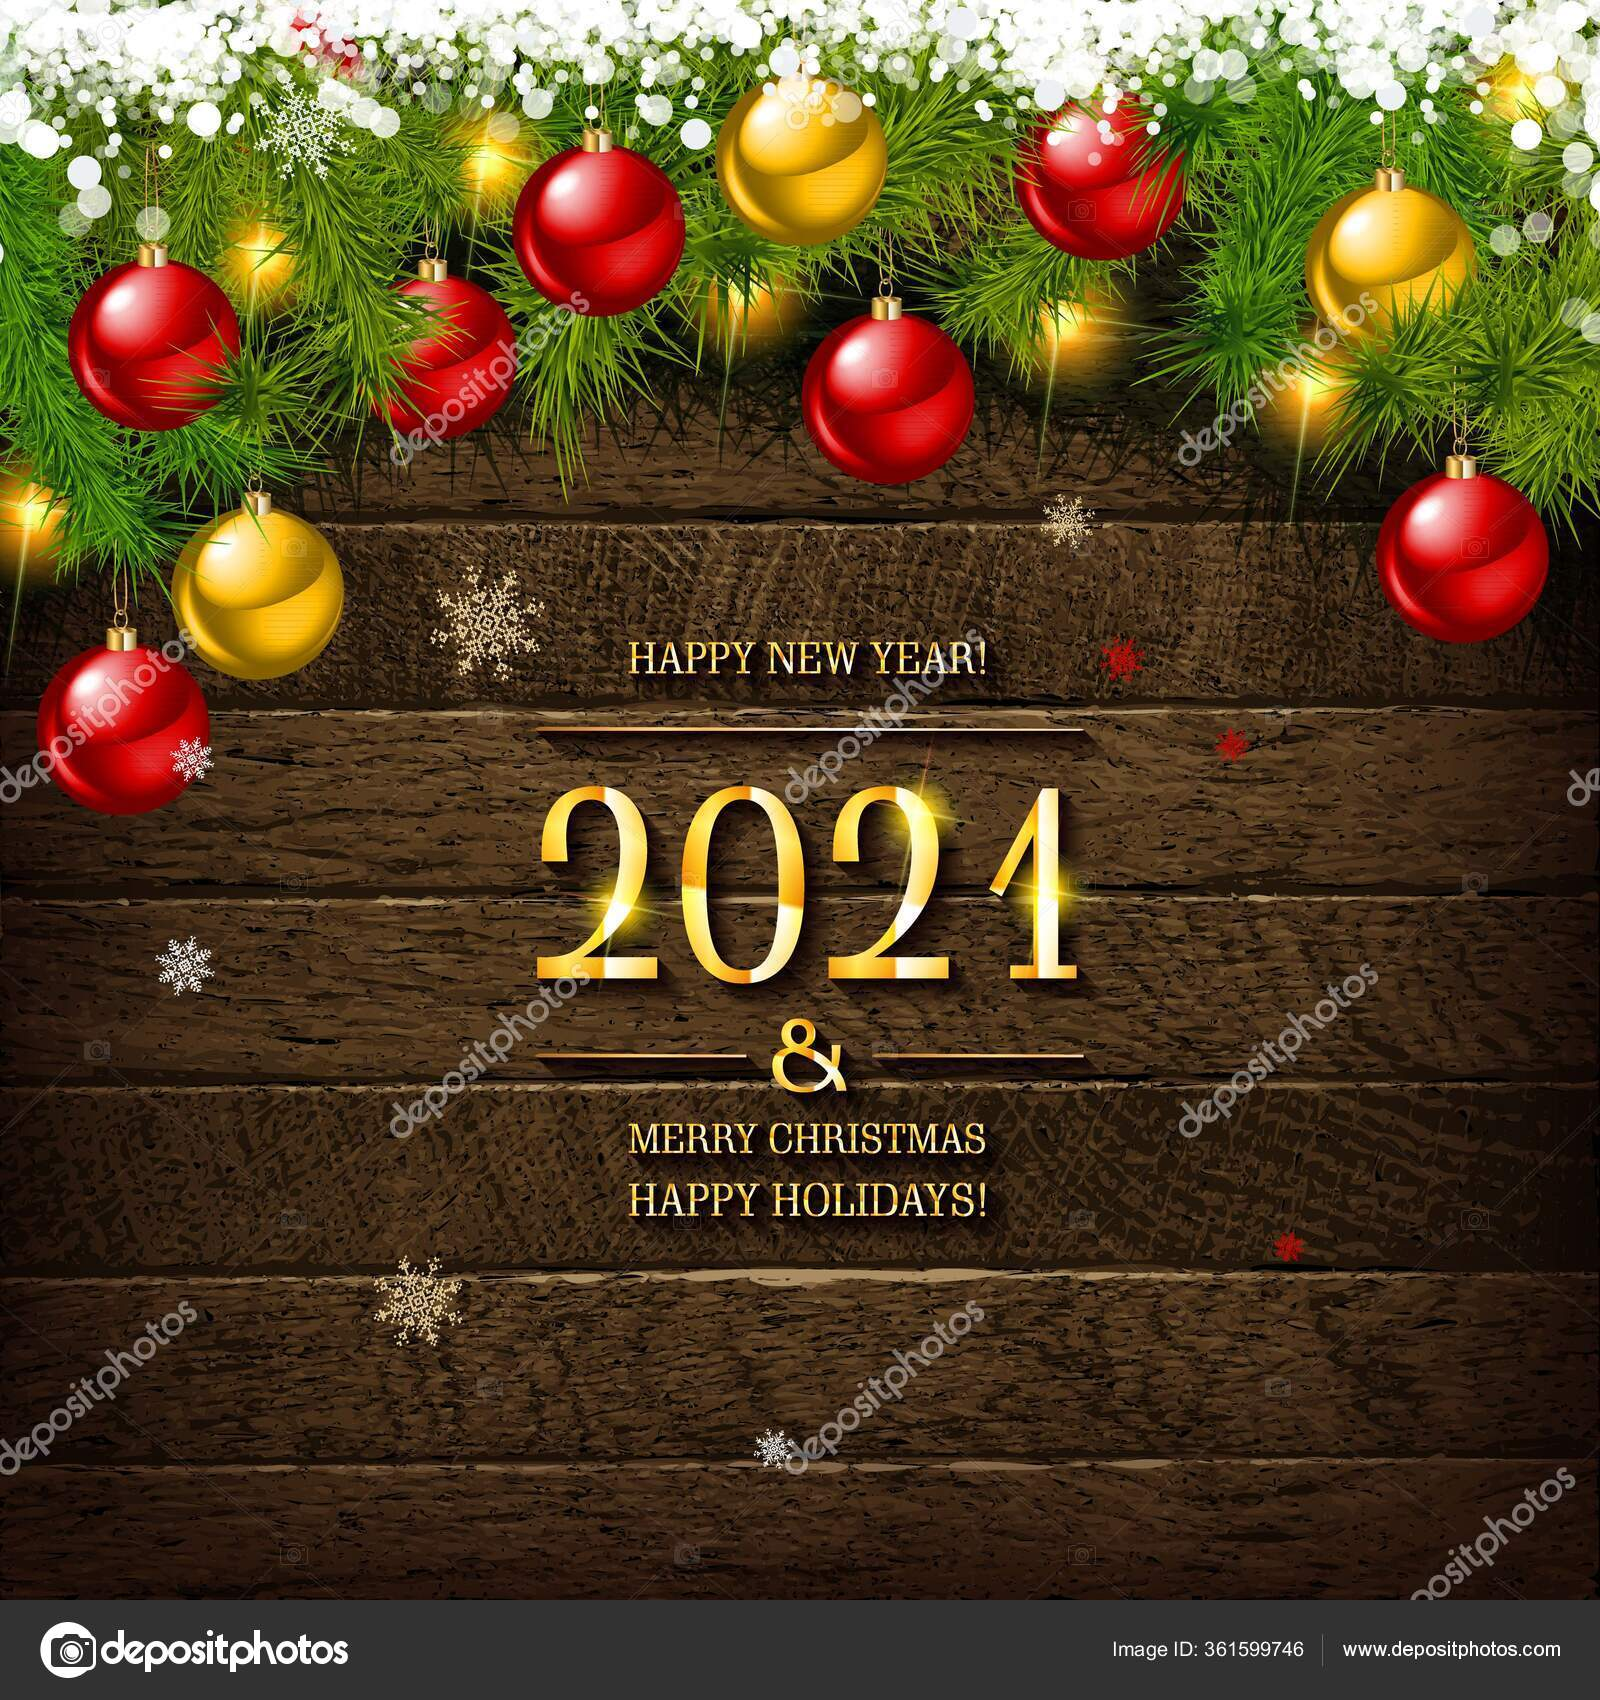 merry christmas happy new year 2021 gold lettering vintage wooden stock vector c nastyaaroma2011 361599746 https depositphotos com 361599746 stock illustration merry christmas happy new year html